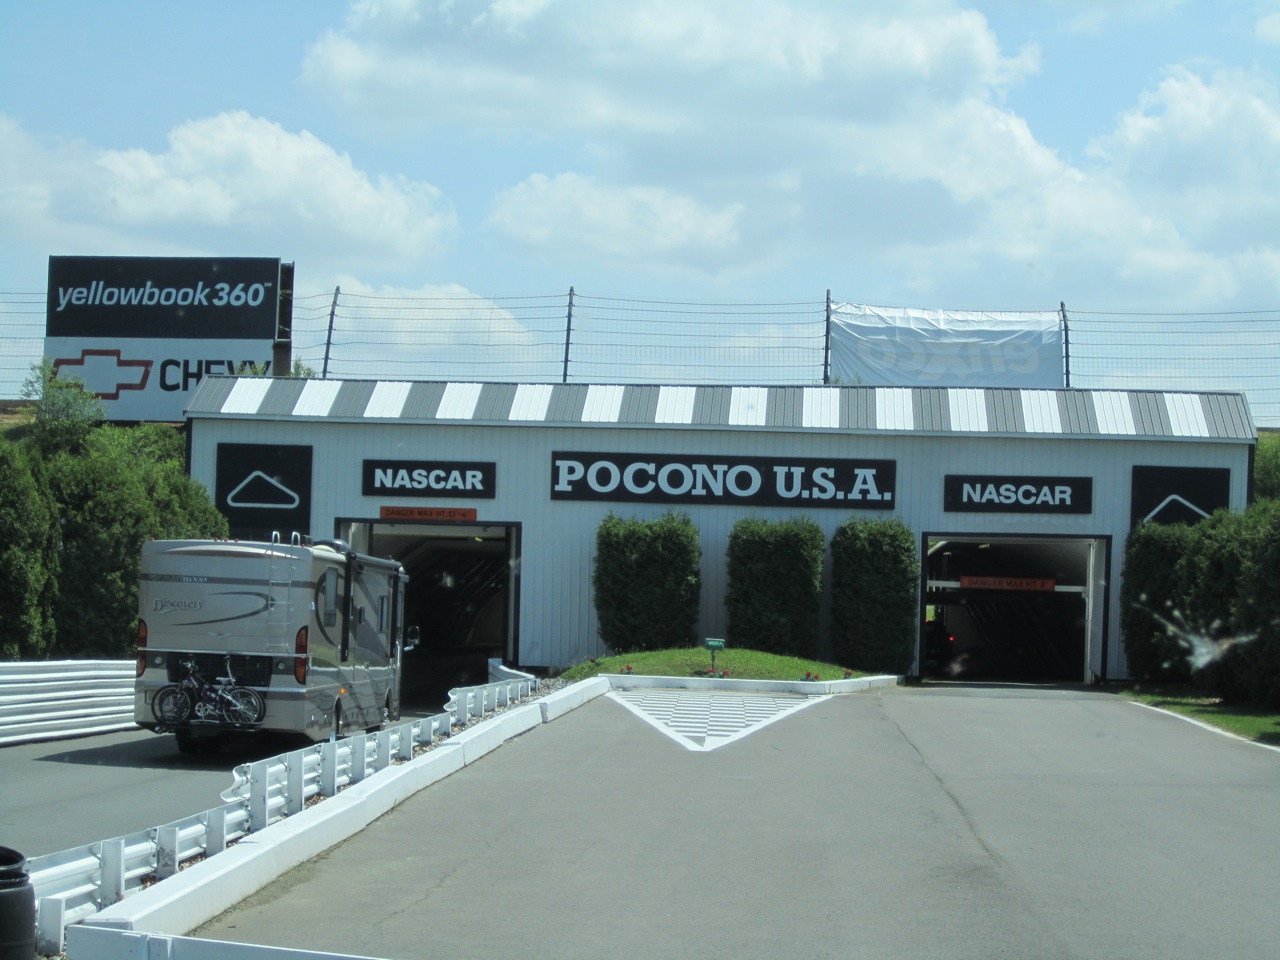 Pocono Raceway Tunnel Entrance To The Infield